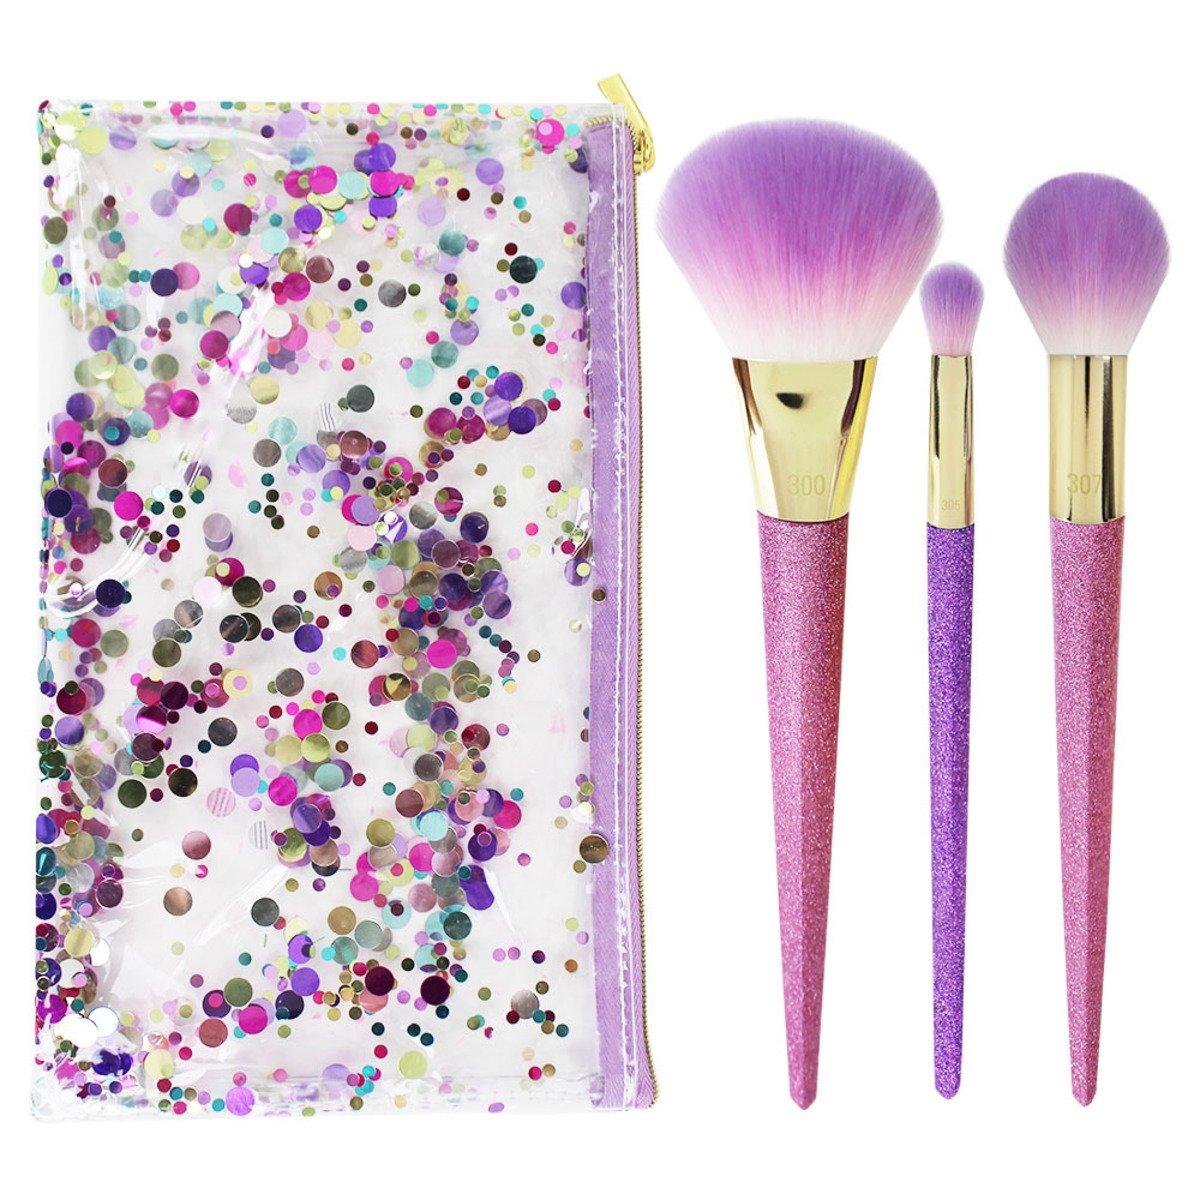 BRUSH CRUSH ™ SHIMMER + SHINE